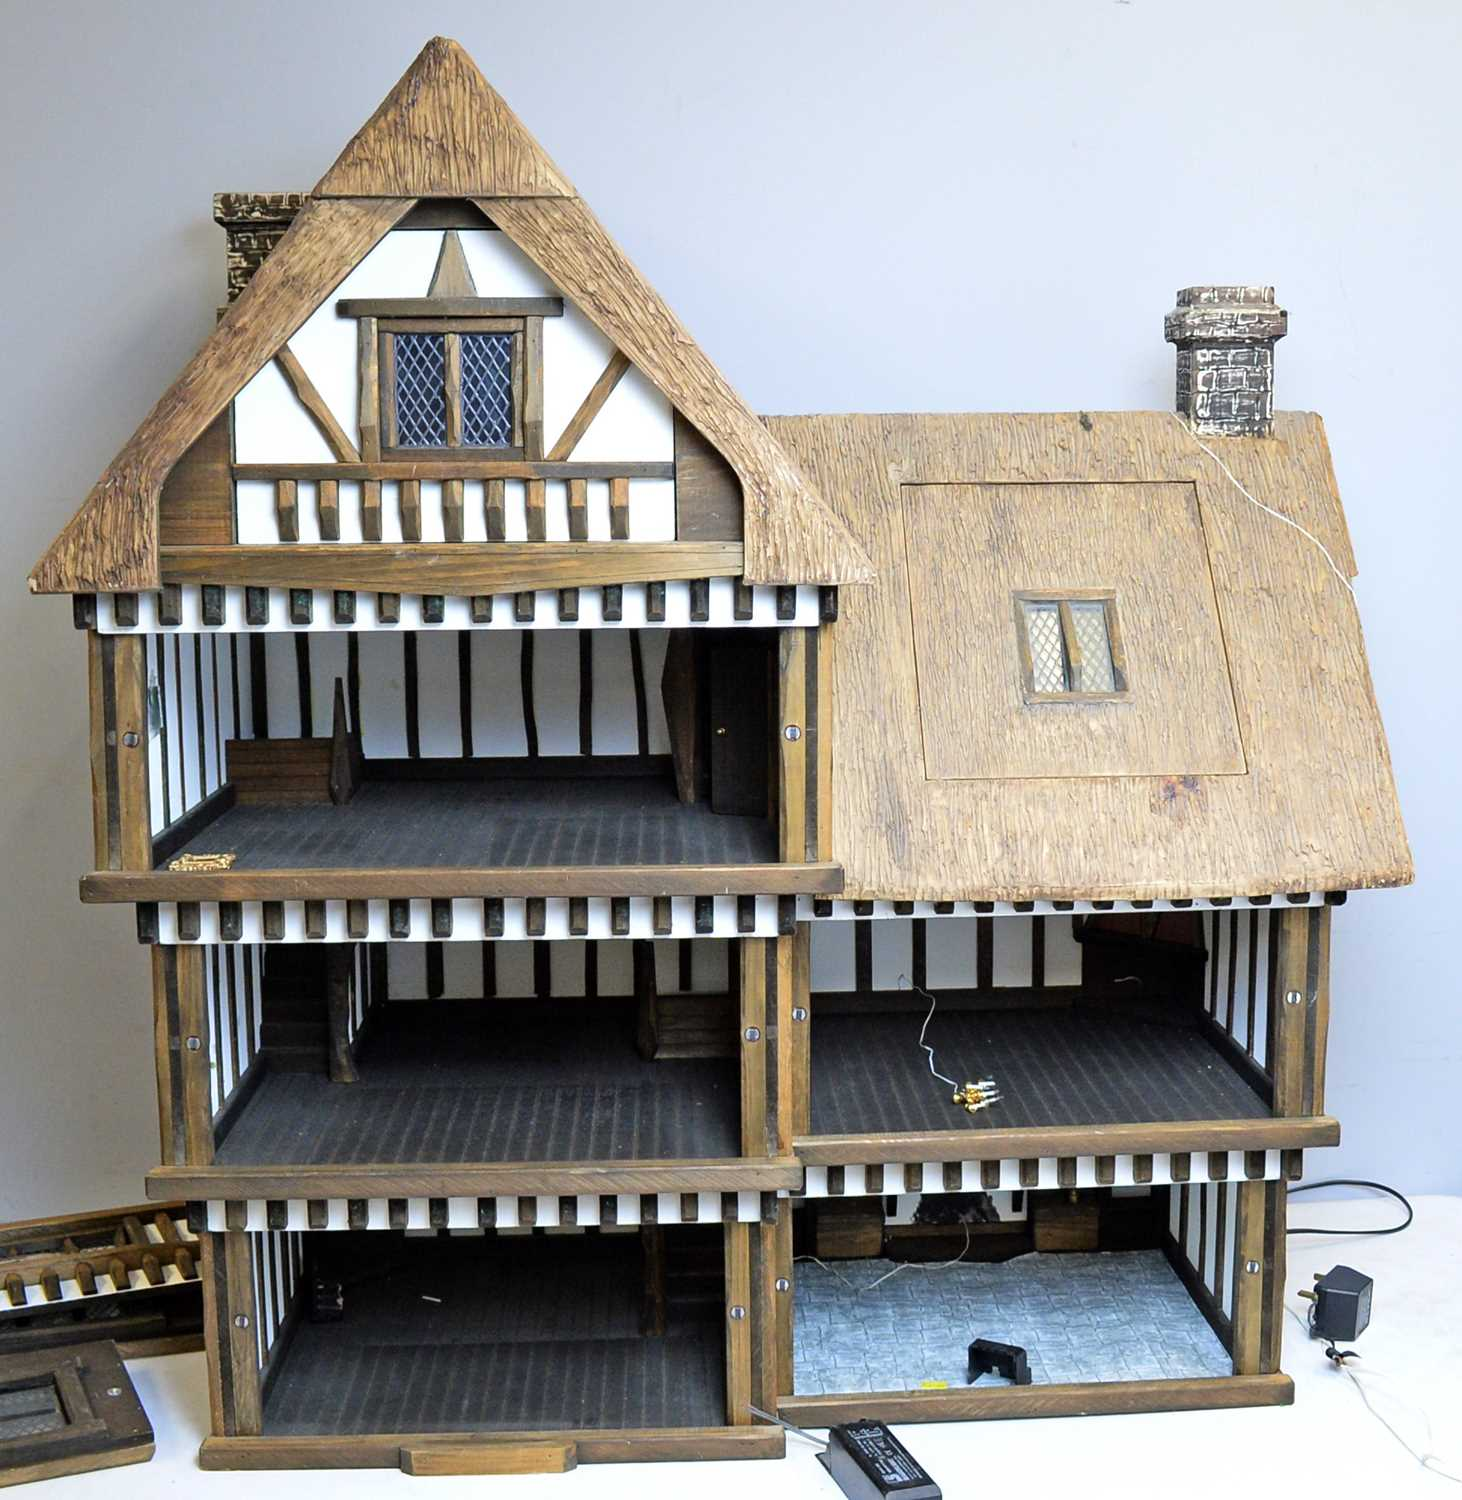 A Tudor-style doll's house by Robert Stubbs - Image 3 of 3